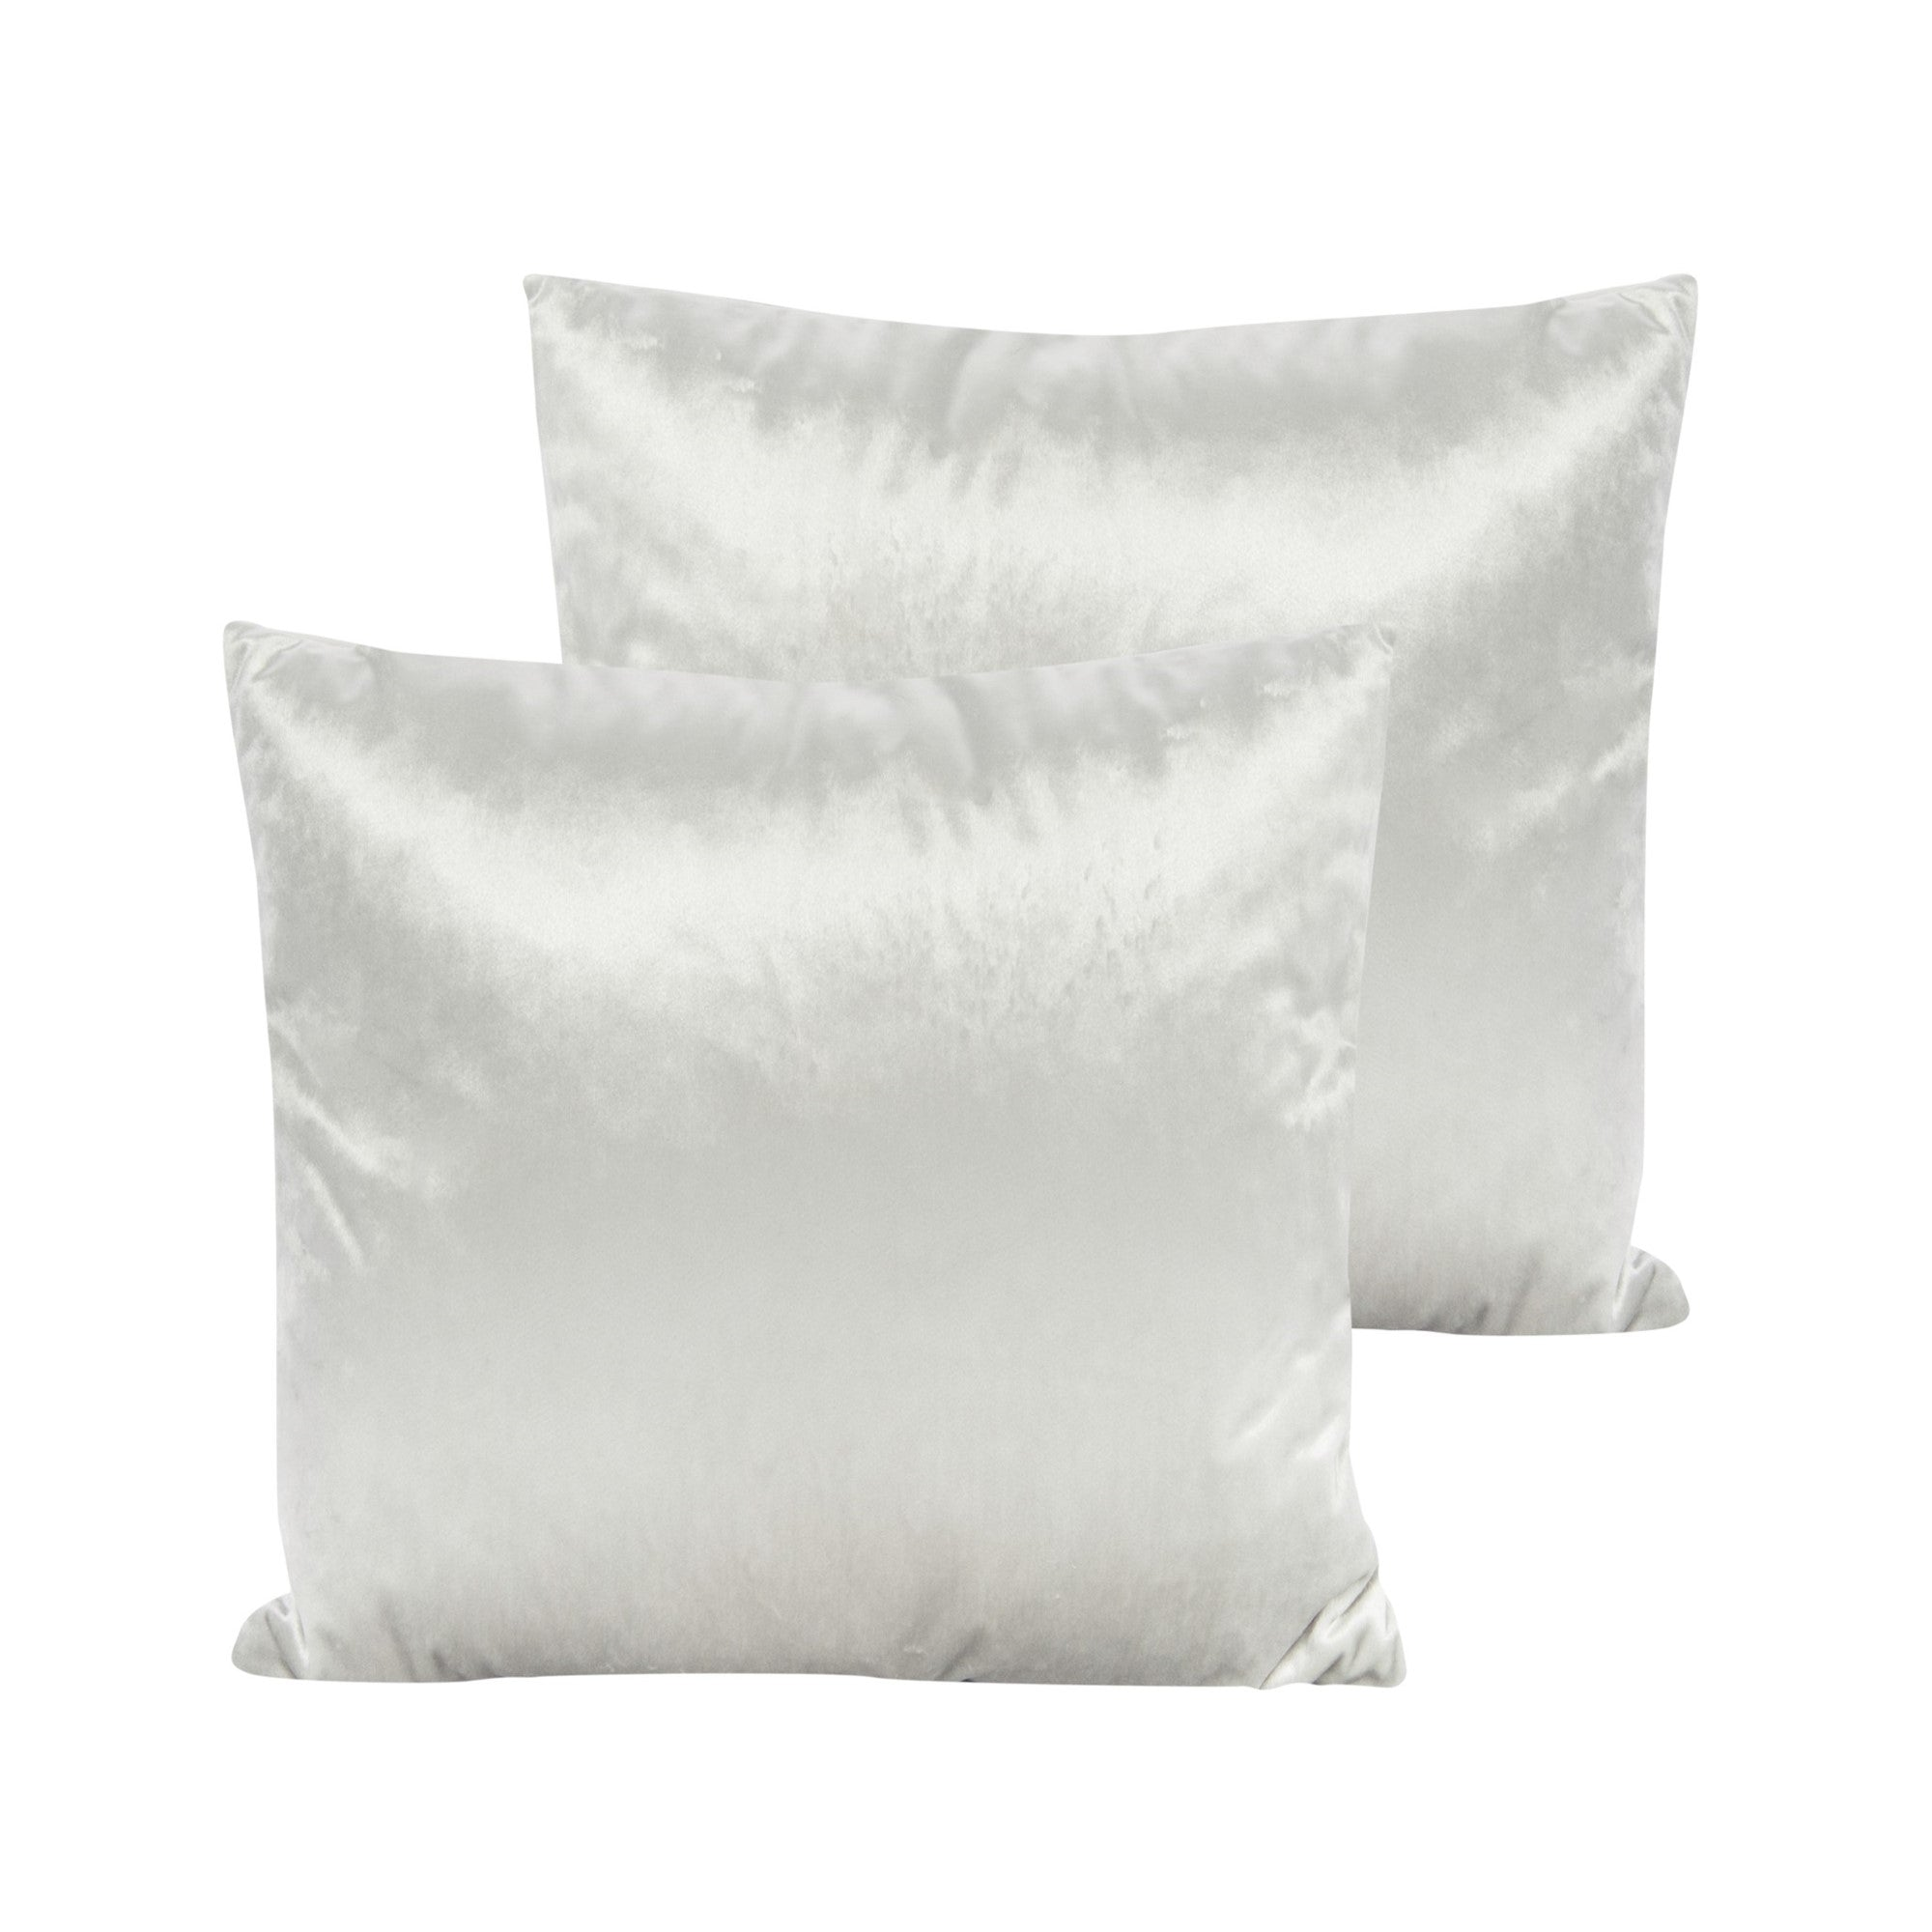 Cream Velvet Pillow - Square - Putti Fine Furnishings Canada